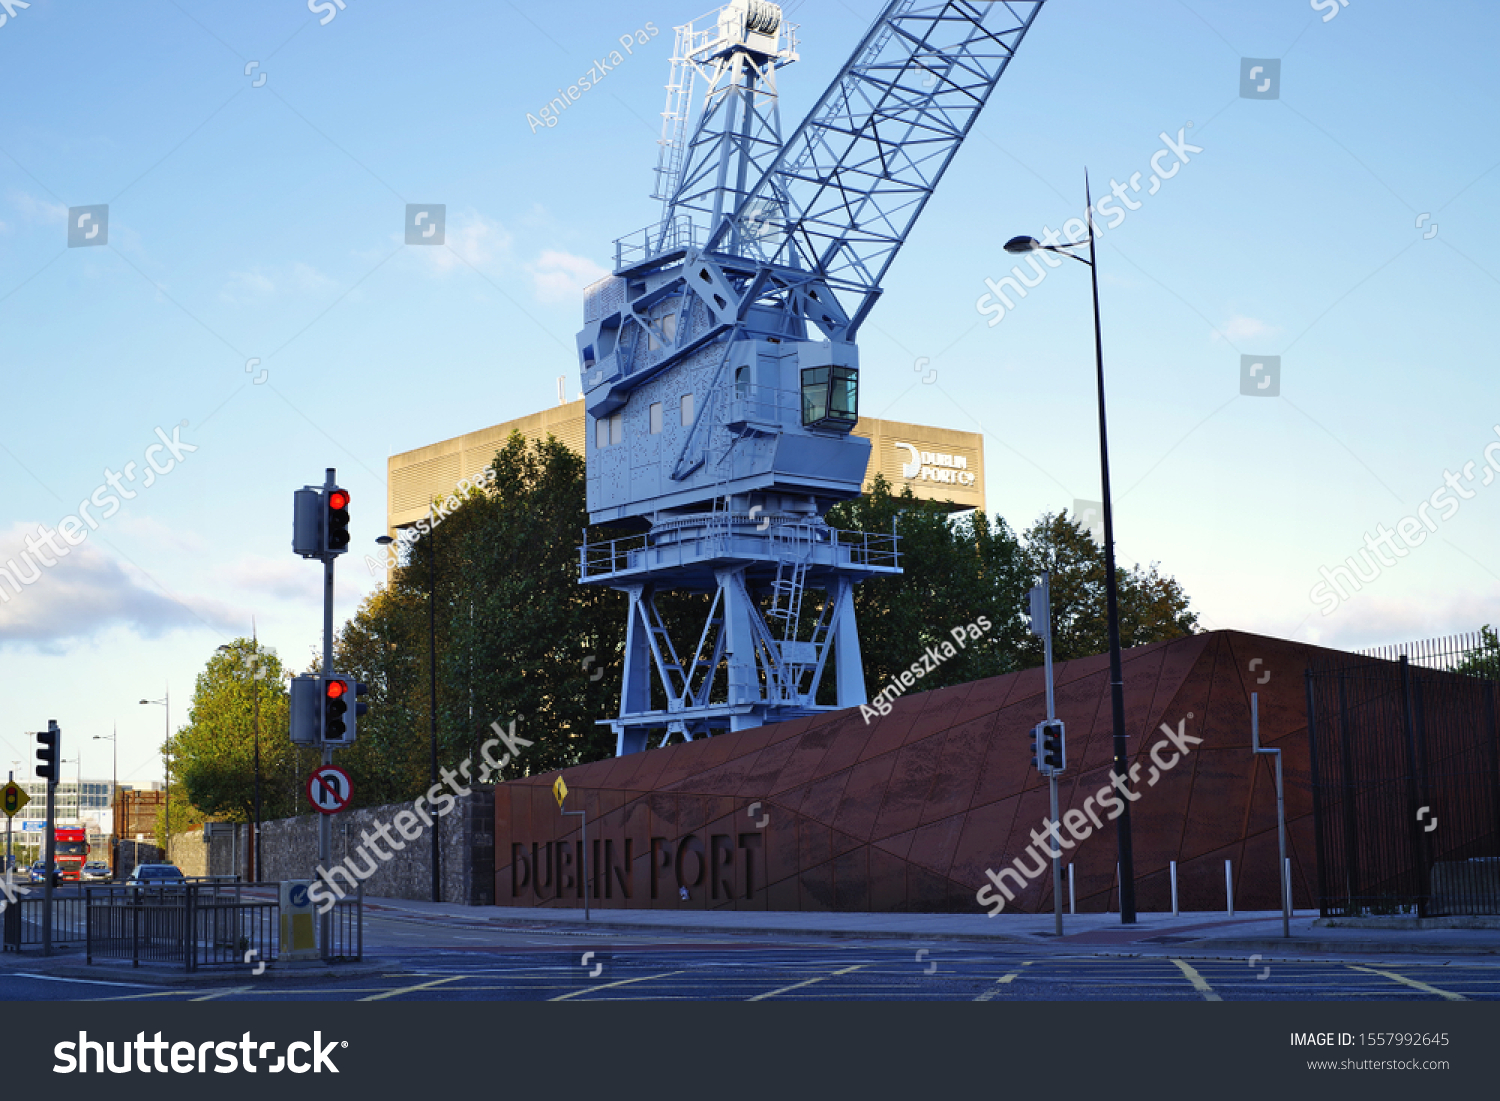 DUBLIN, IRELAND - November 08, 2019: Dublin Port Company in Eastpoint Business Park. Street view of the company name with old renovated crane as logo. Dublin Port building in the background.